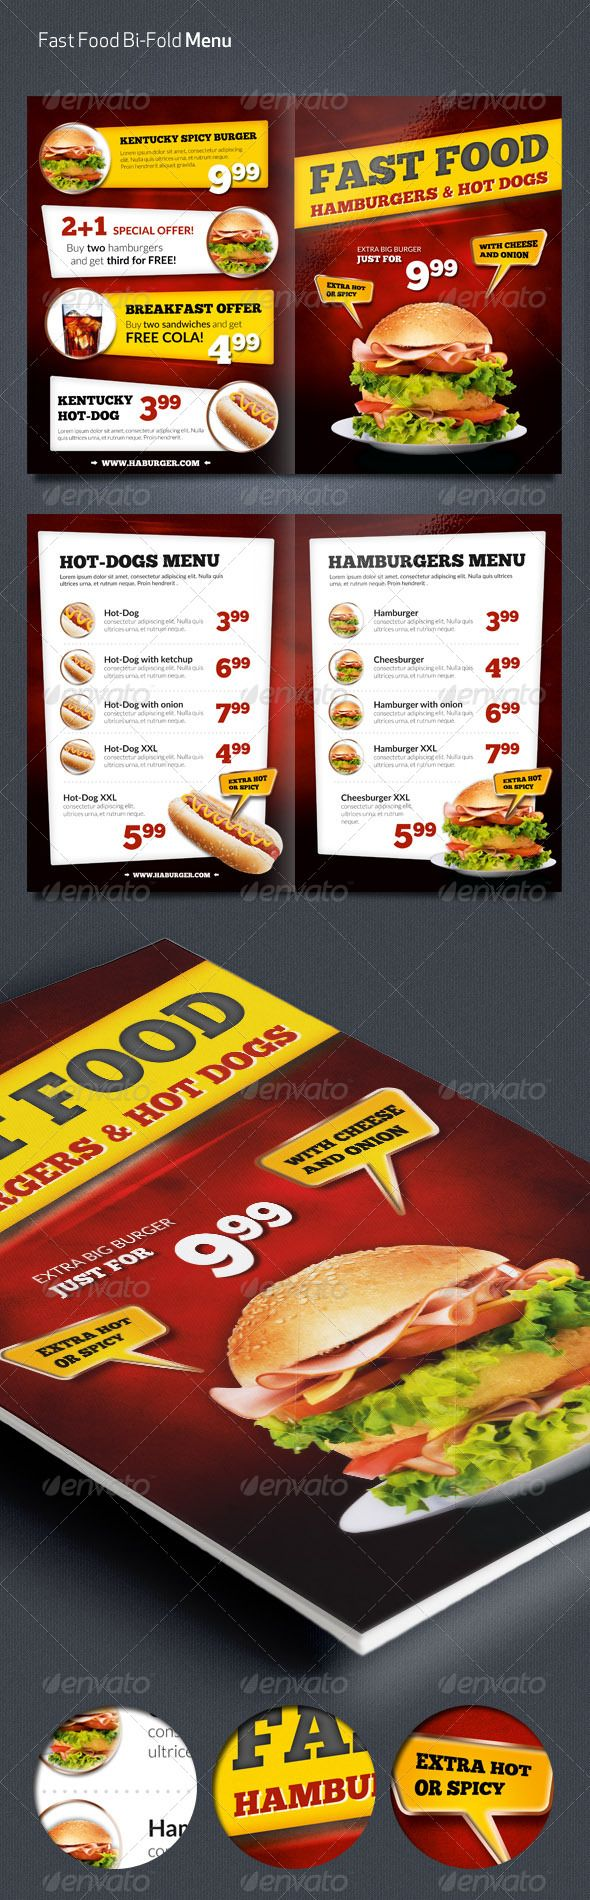 Fast Food Menu Flyer Template #design Download: http://graphicriver.net/item/fast-food-menu-flyer/7309491?ref=ksioks